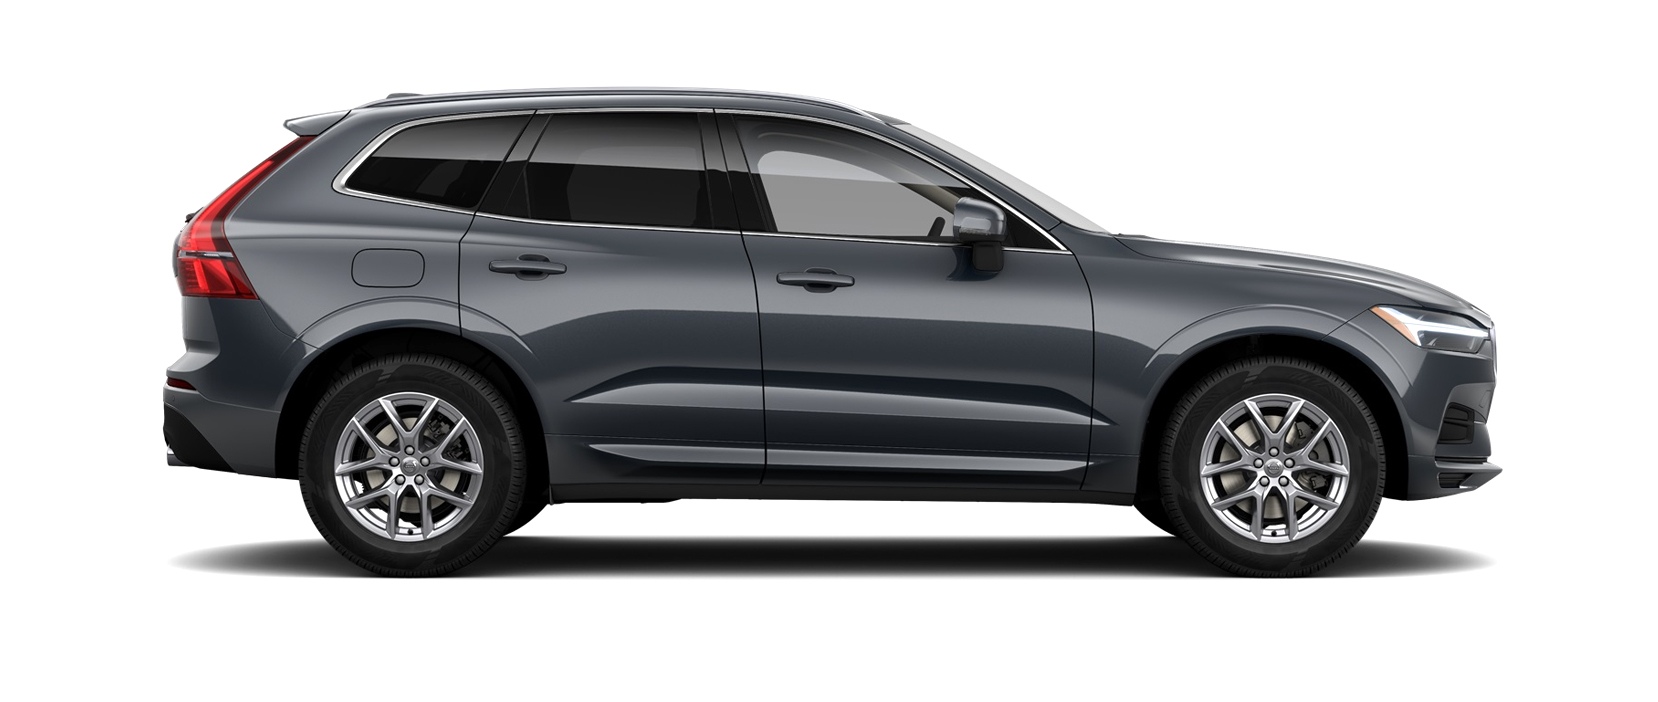 2020 Volvo XC60 T5 AWD Momentum shown